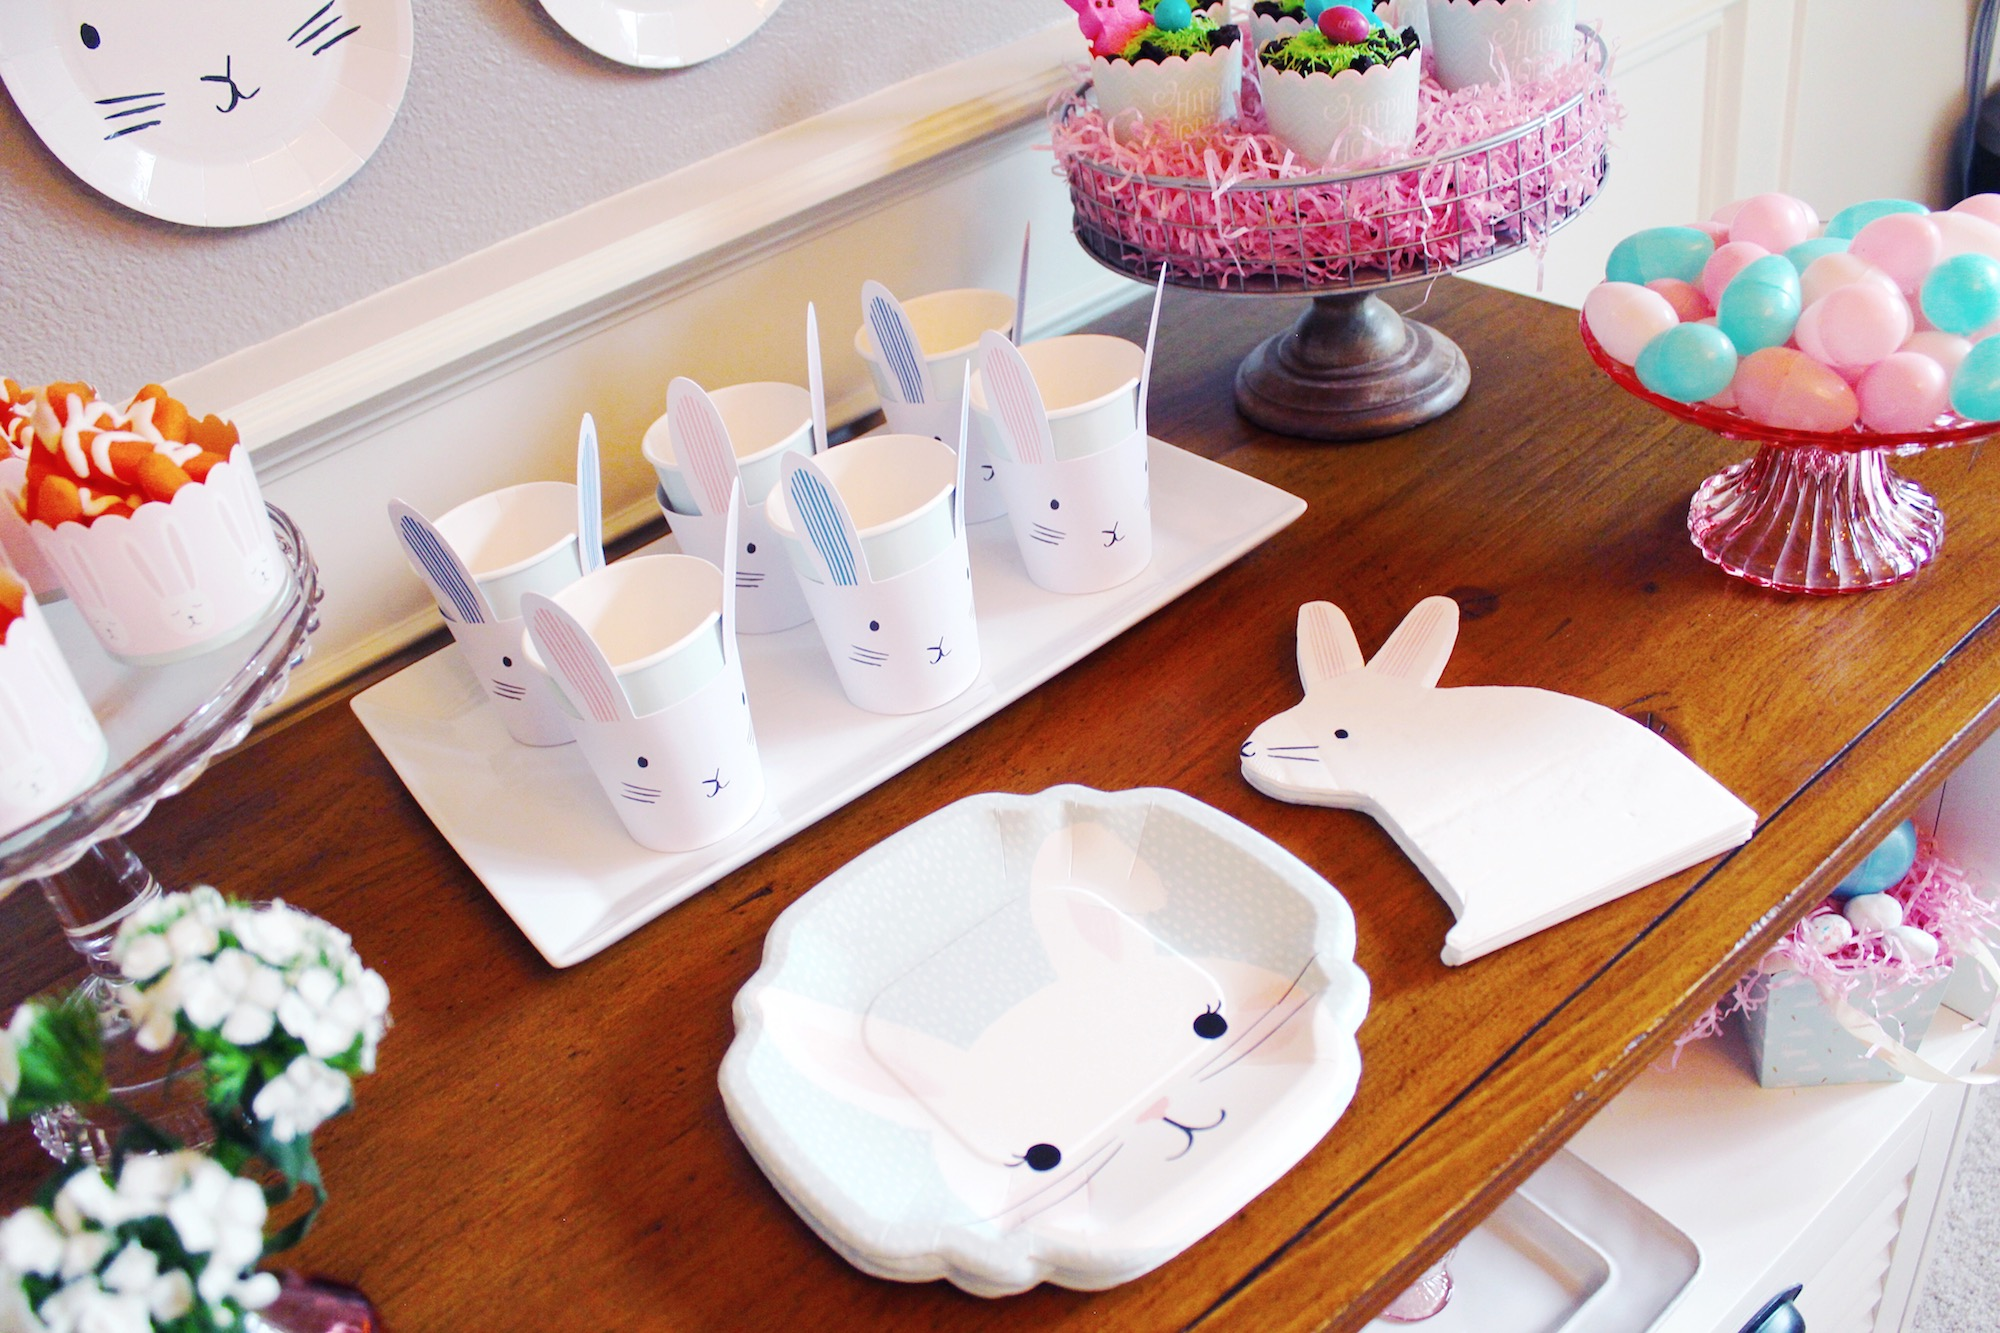 Easter Party Paper Goods_Bunny Plates Cups Napkins_Design Organize Party.JPG